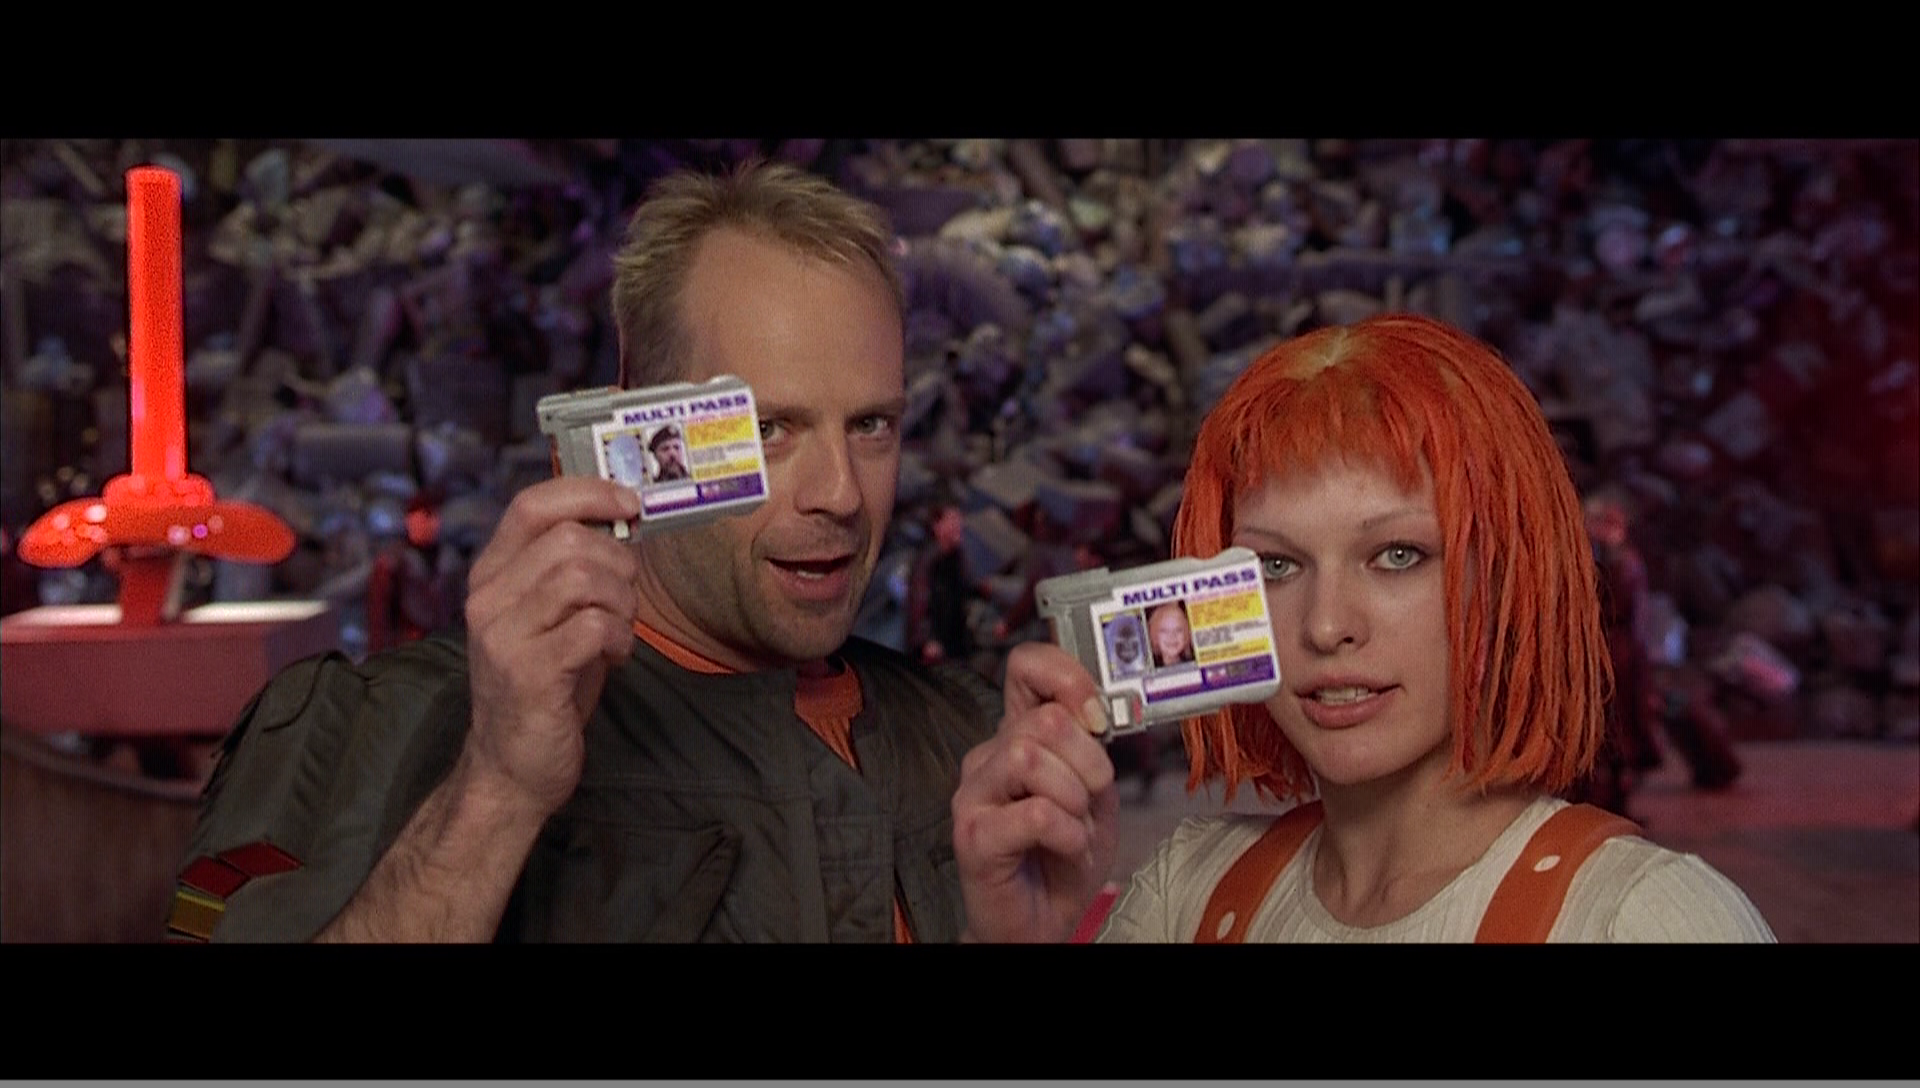 http://cdn.wallpaperjam.com/9ad9ef2a97af673b77d757d3a2e86376fa5e55a3/actress-multipass-the-fifth-element-bruce-willis.png